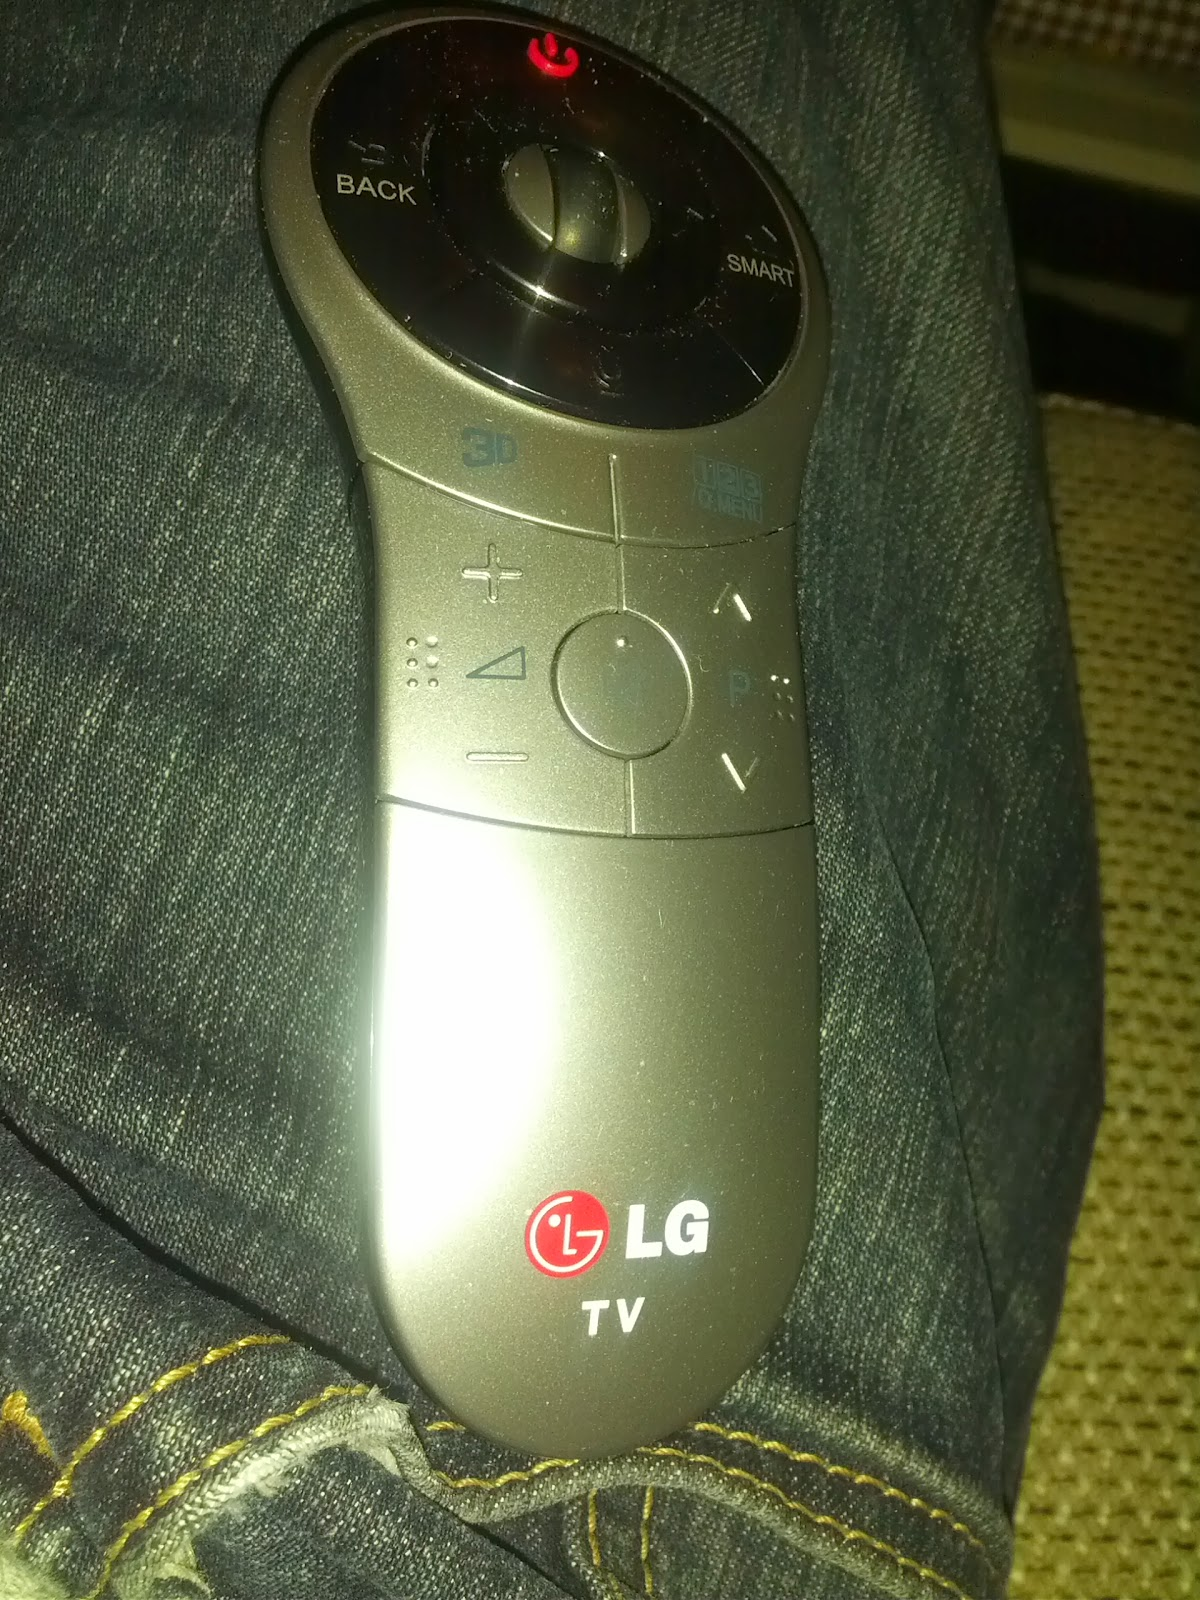 LG 42LA660S magic remote